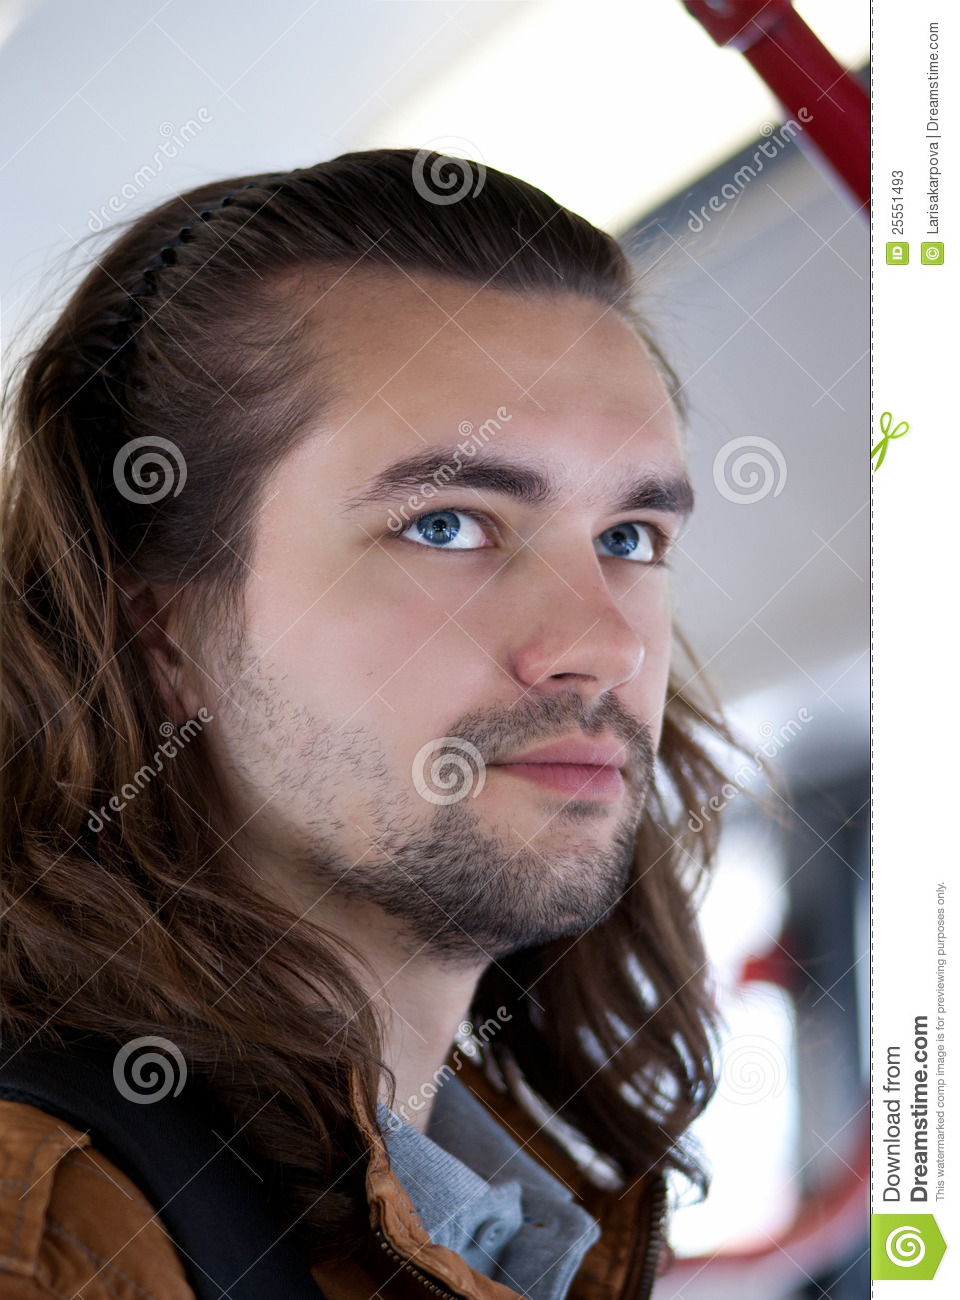 Young Attractive Guy With Long Hair Stock Image - Image of ...